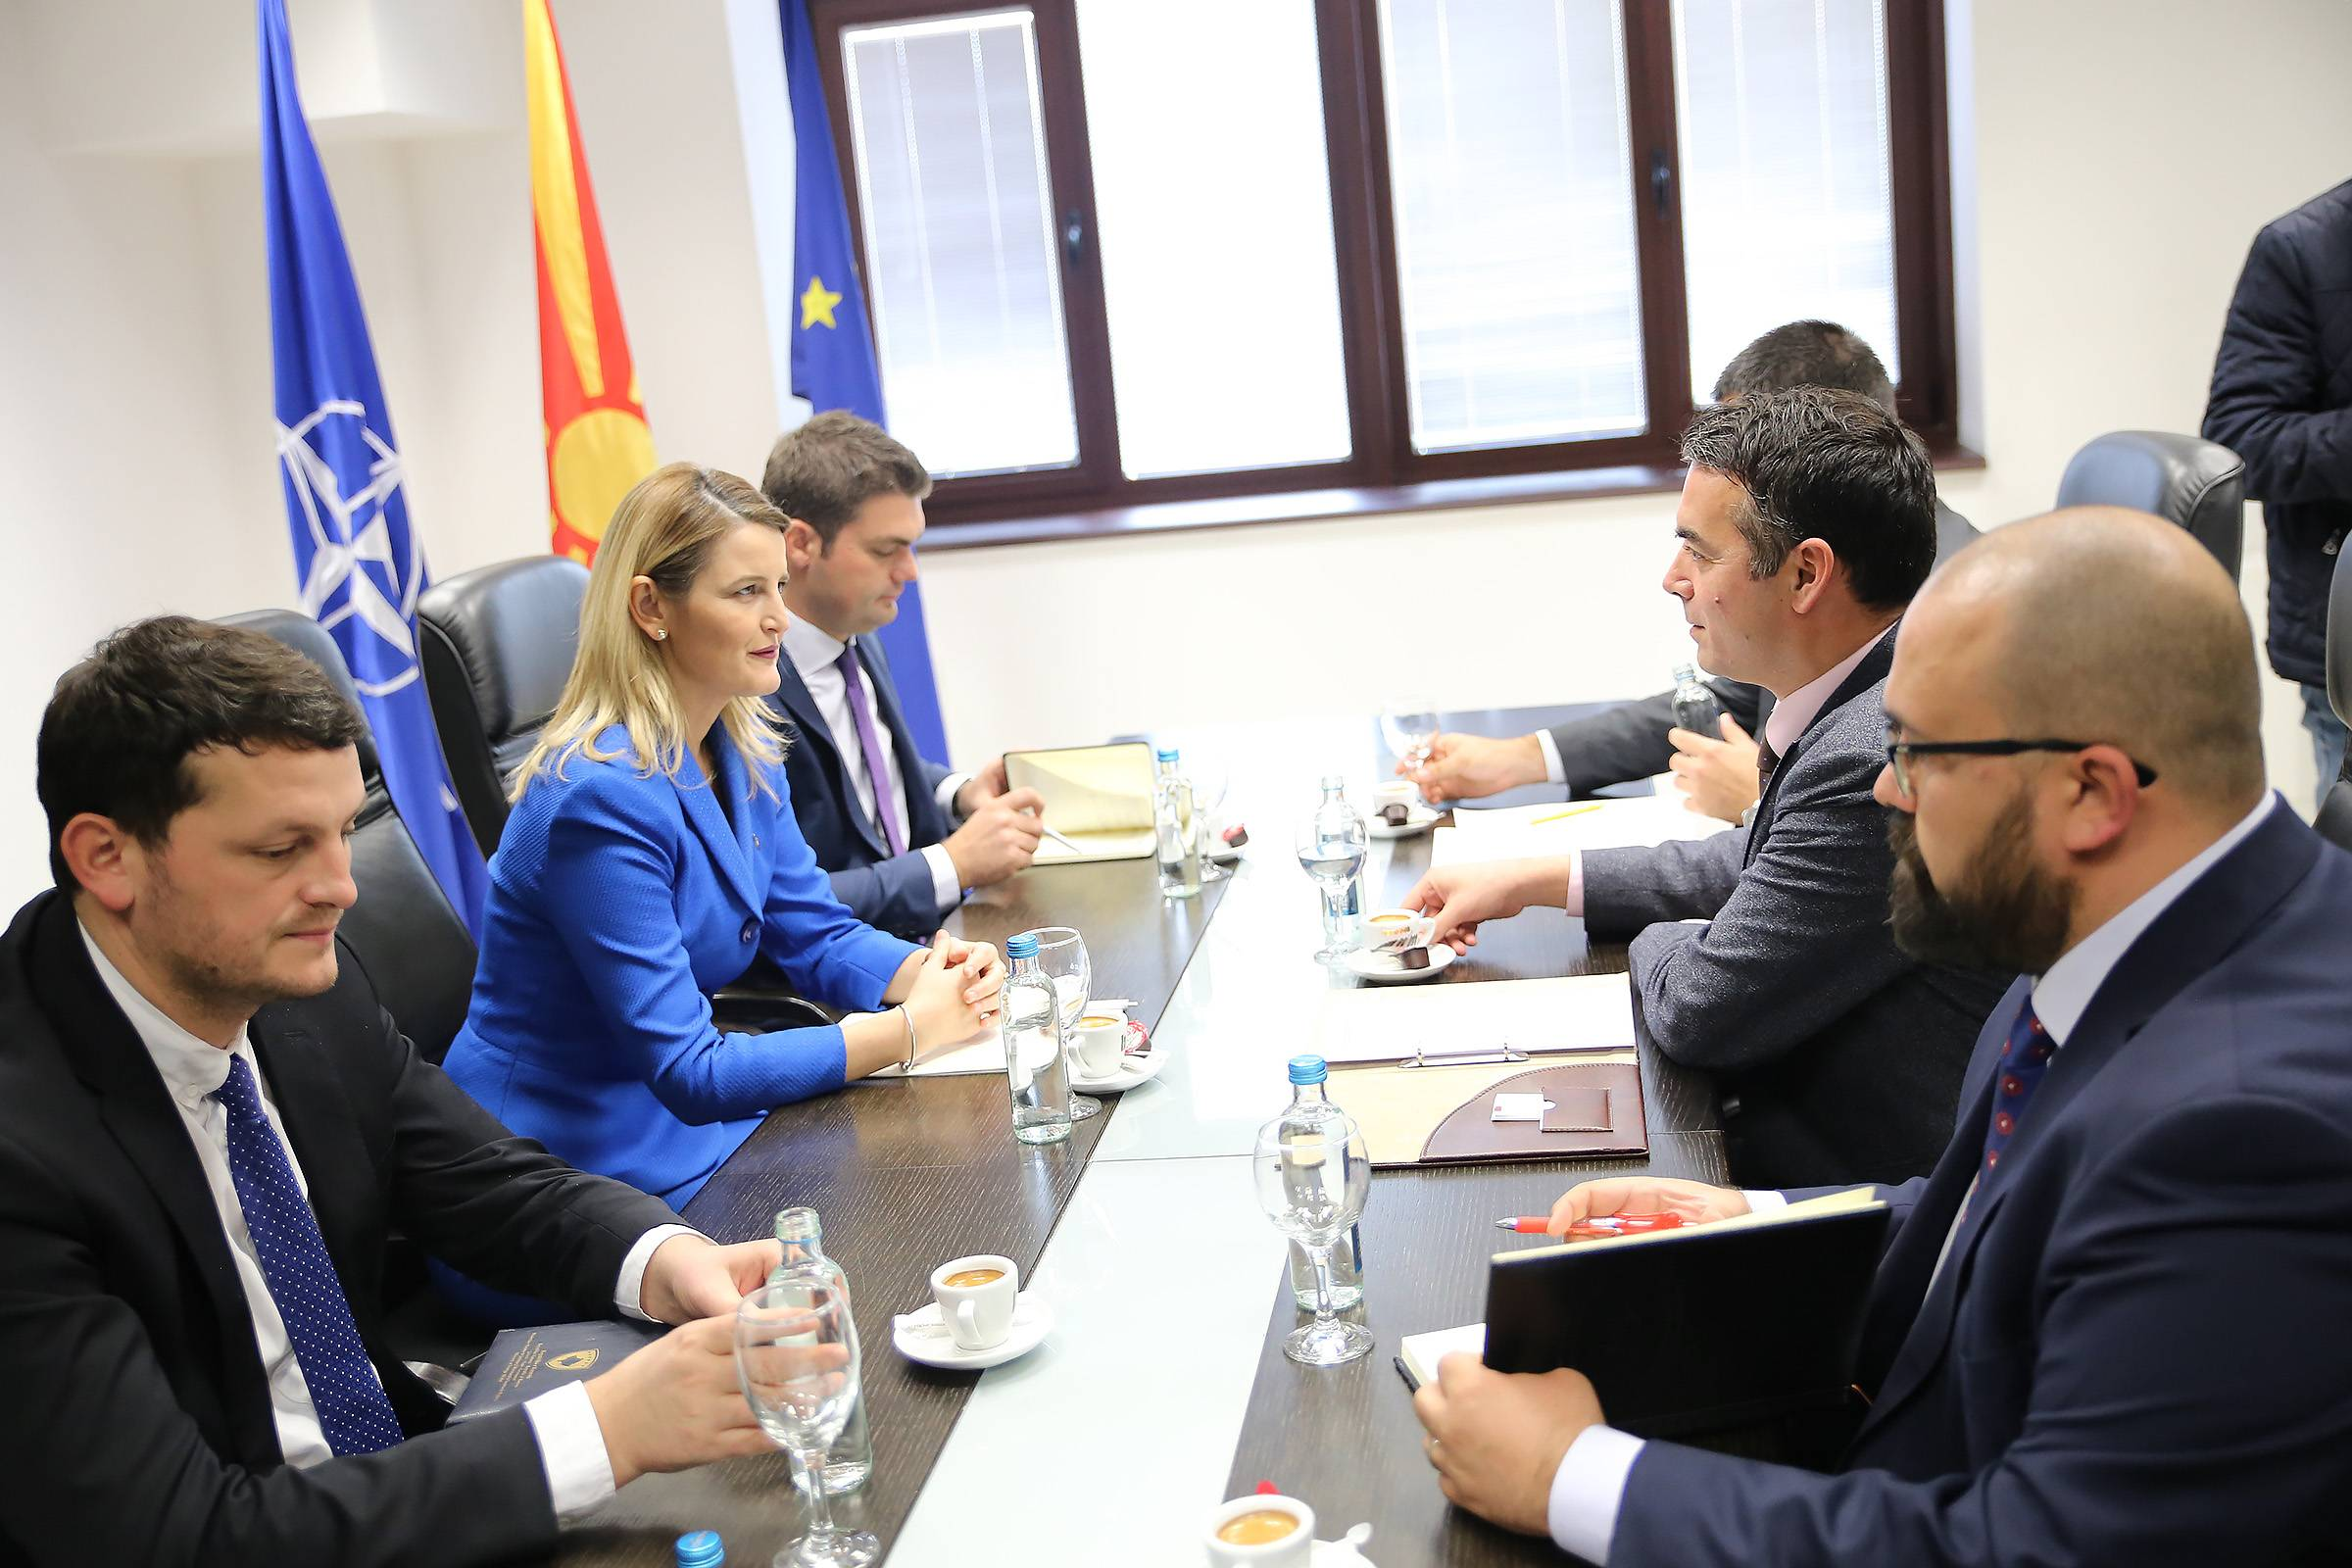 Kumanovo's case aggravates relations between Kosovo and FYROM